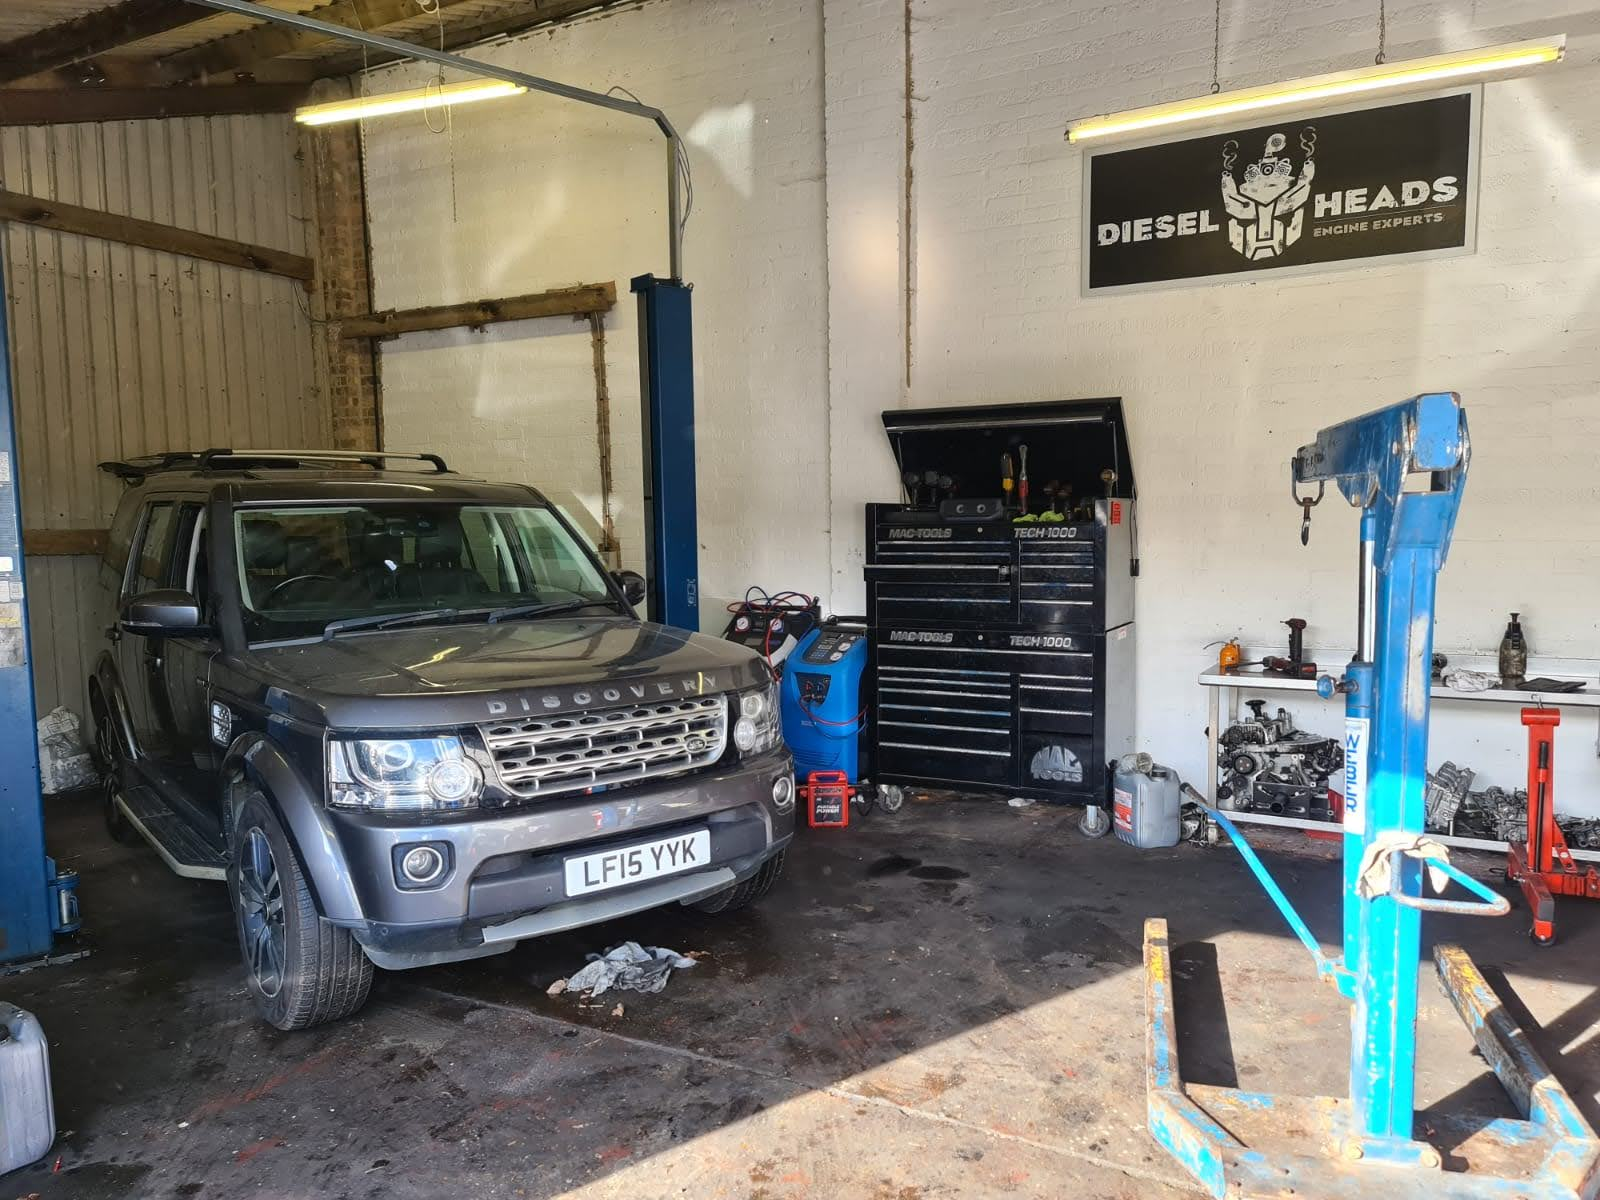 land rover discovery 3.0 tdv6 engine